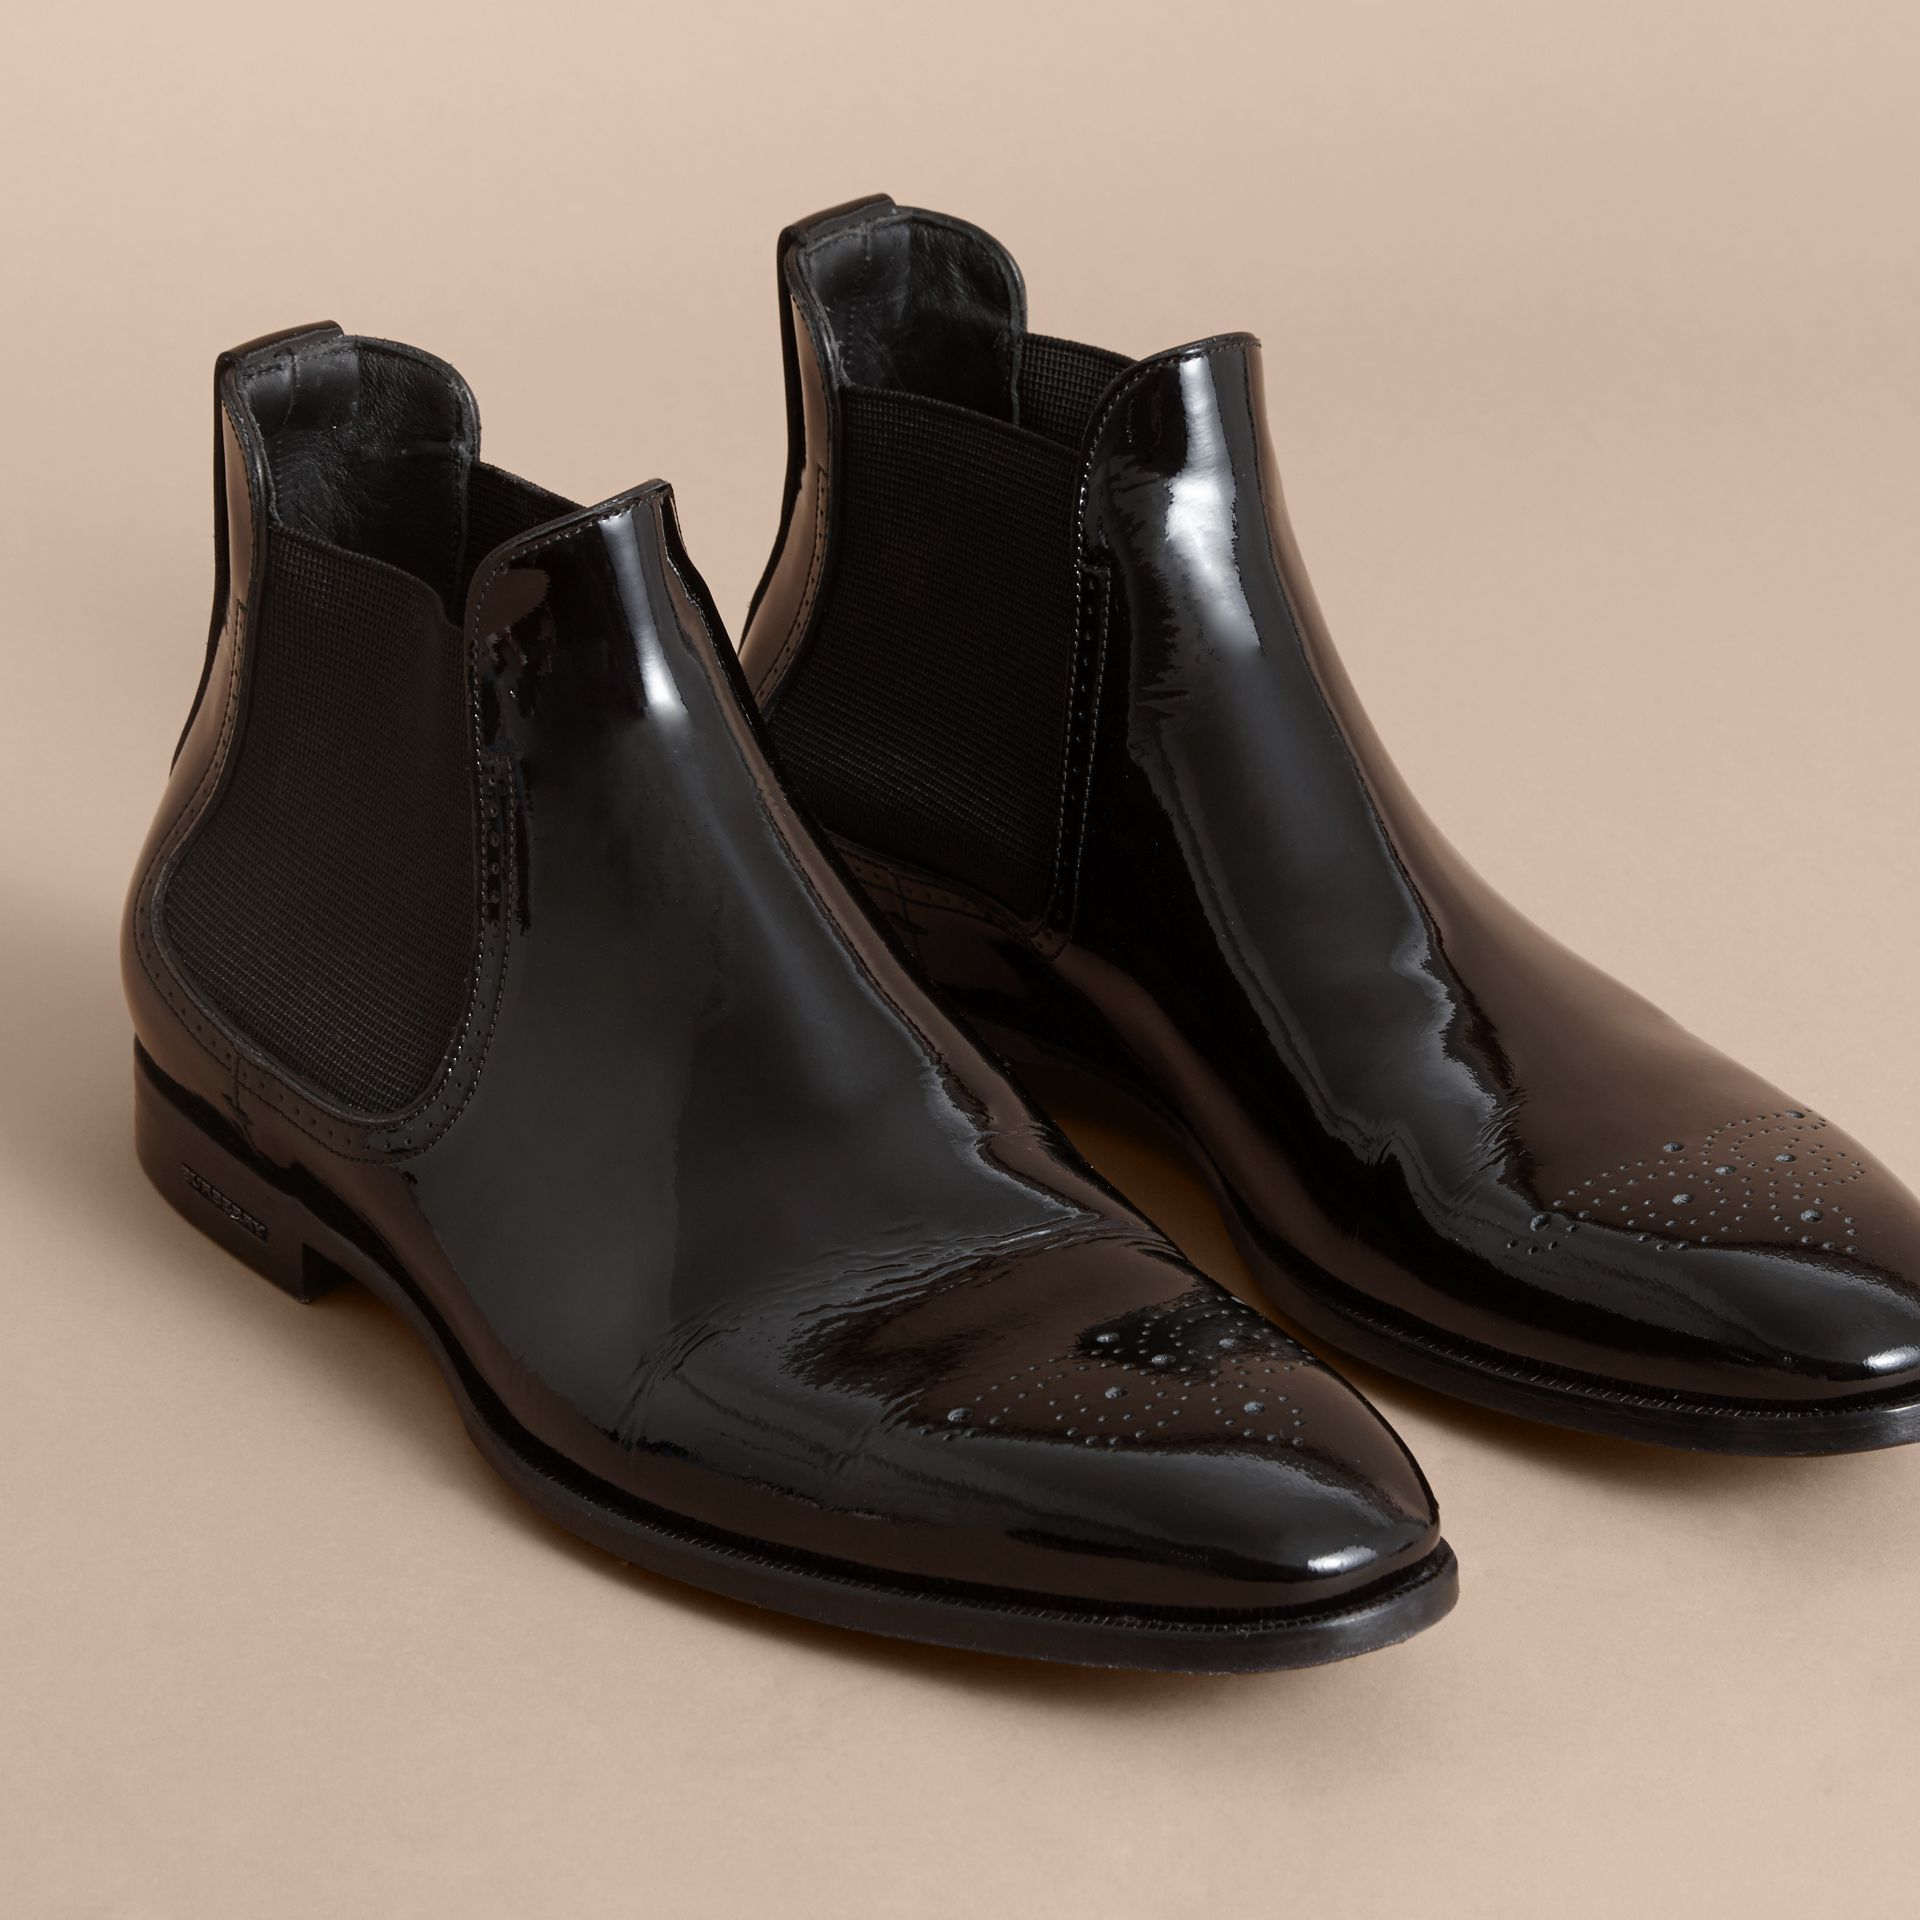 Polished Leather Chelsea Boots in Black - Men | Burberry Hong Kong - gallery image 5